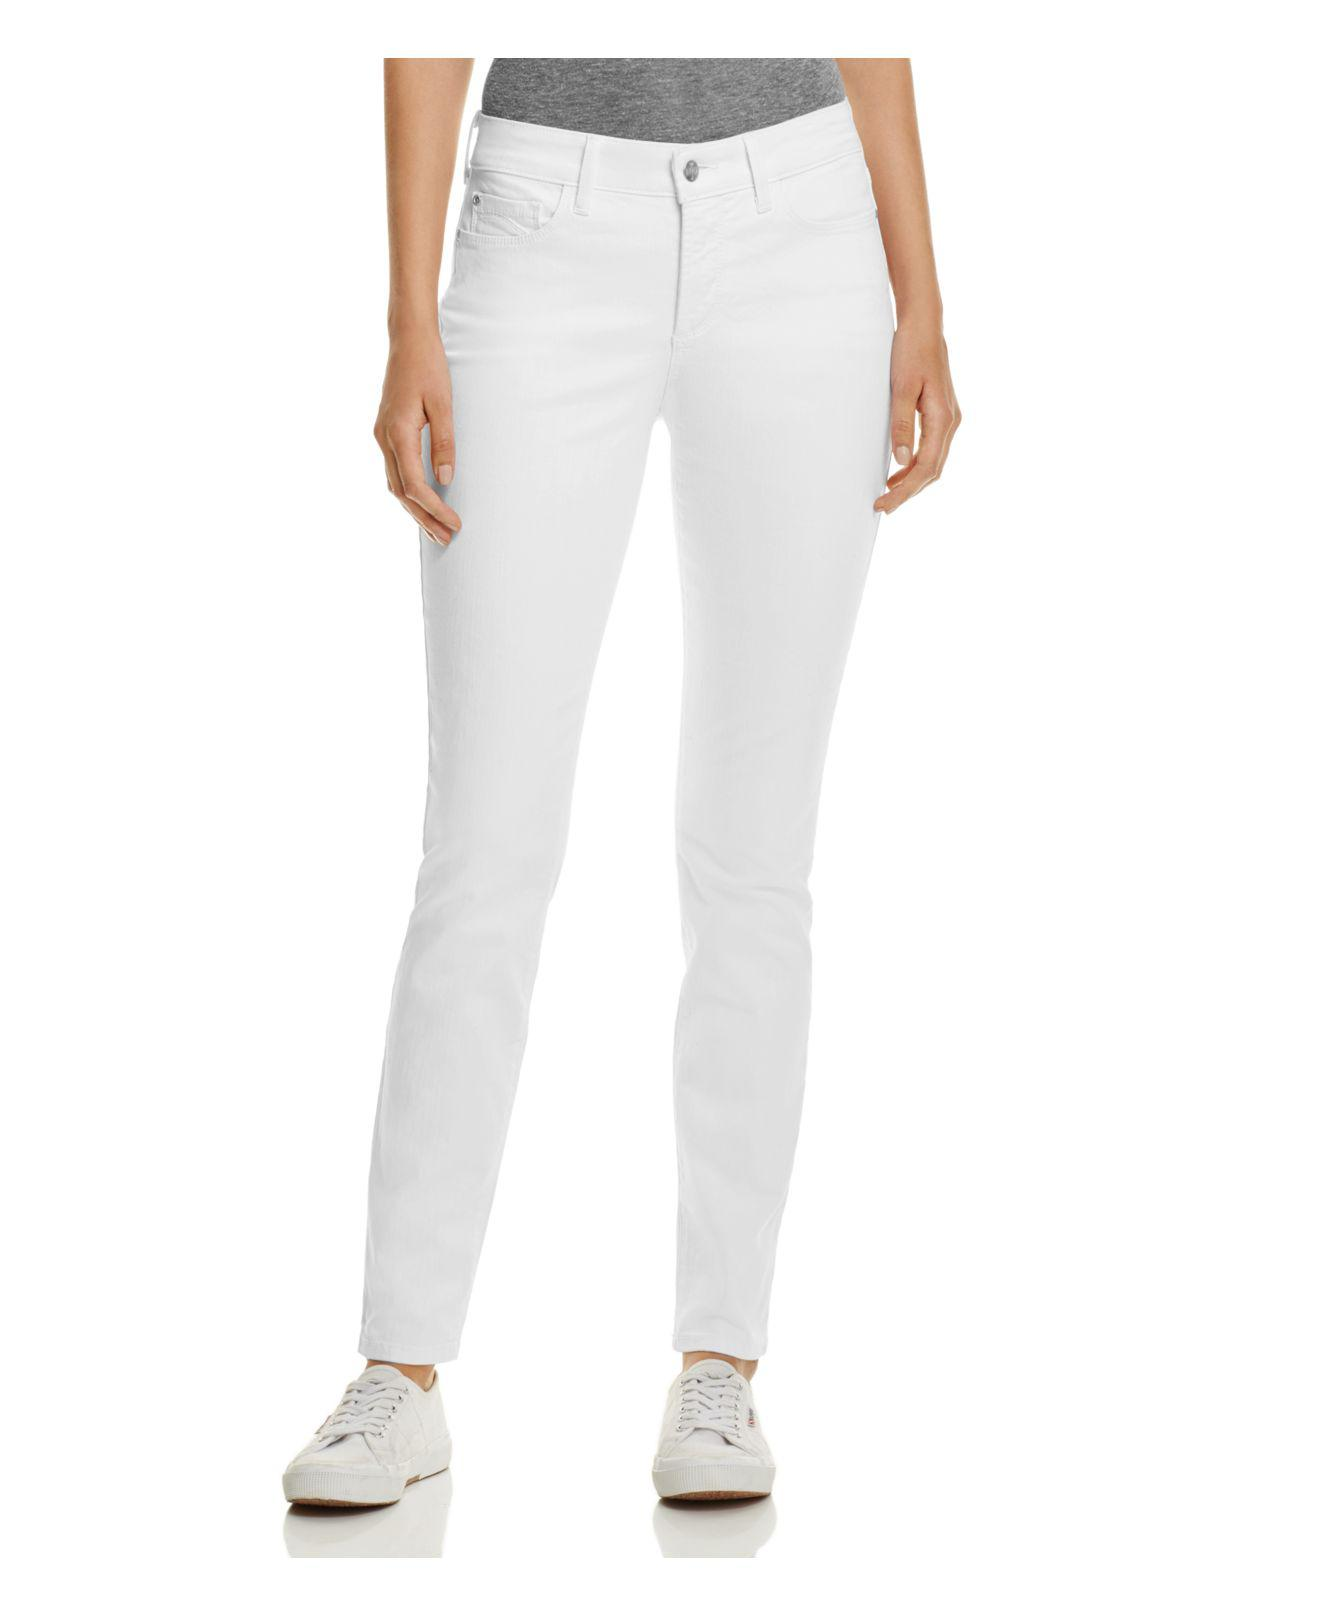 0aac985f87a67 Gallery. Previously sold at: Bloomingdale's · Women's White Jeans ...